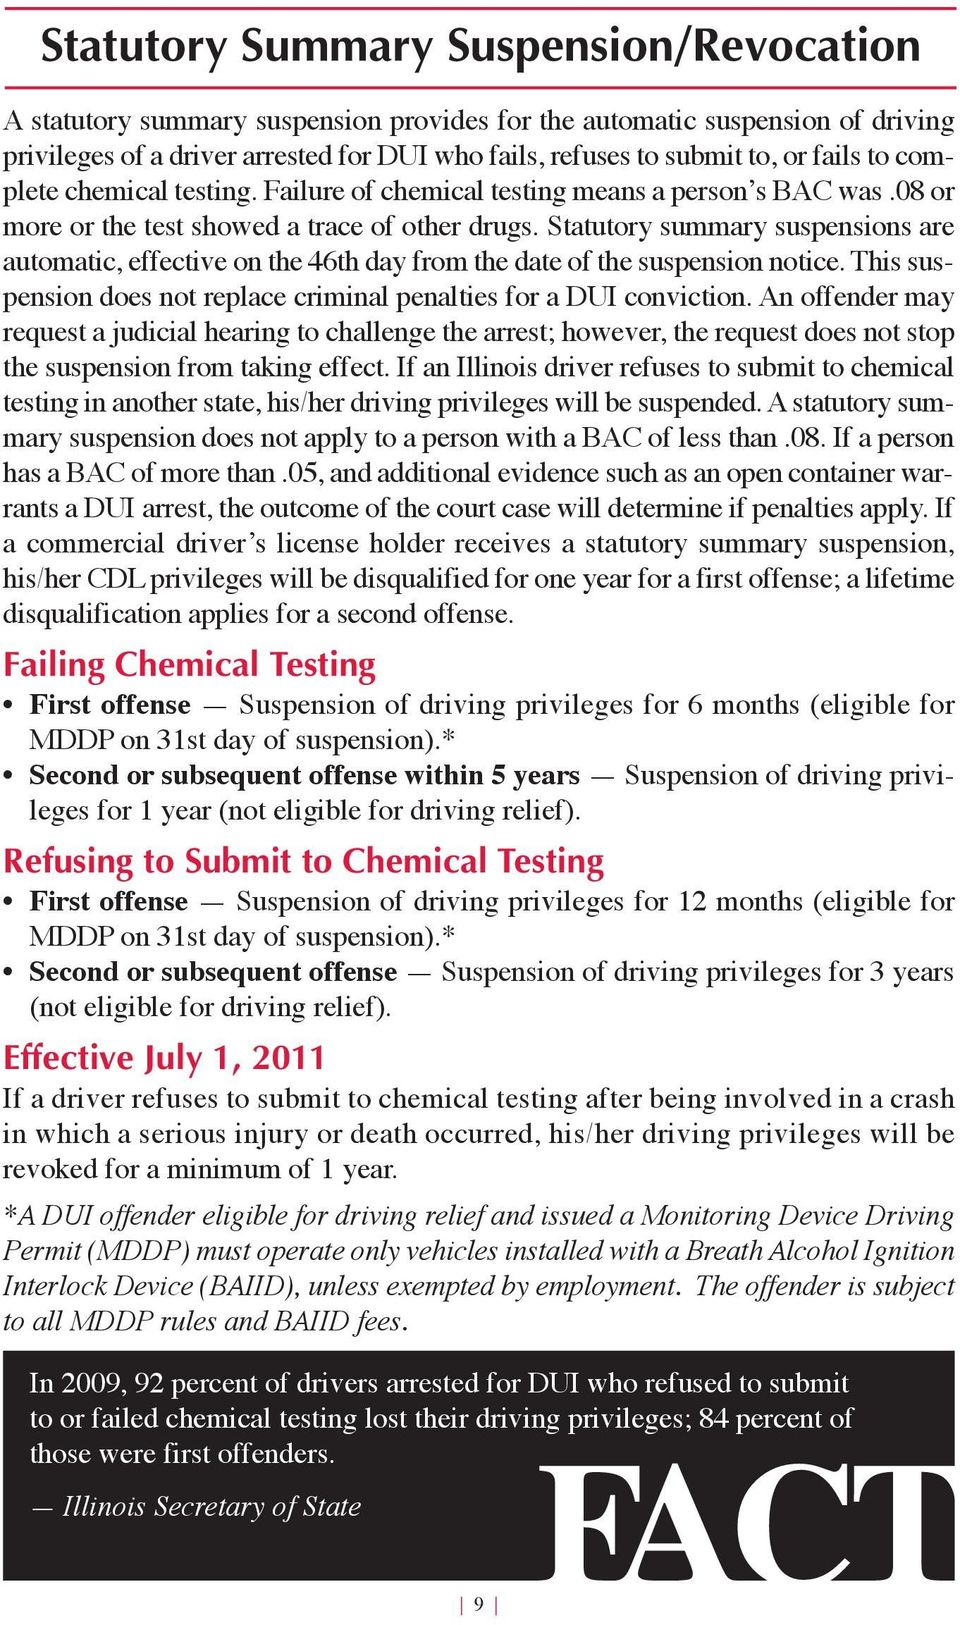 Statutory summary suspensions are automatic, effective on the 46th day from the date of the suspension notice. This suspension does not replace criminal penalties for a DUI conviction.